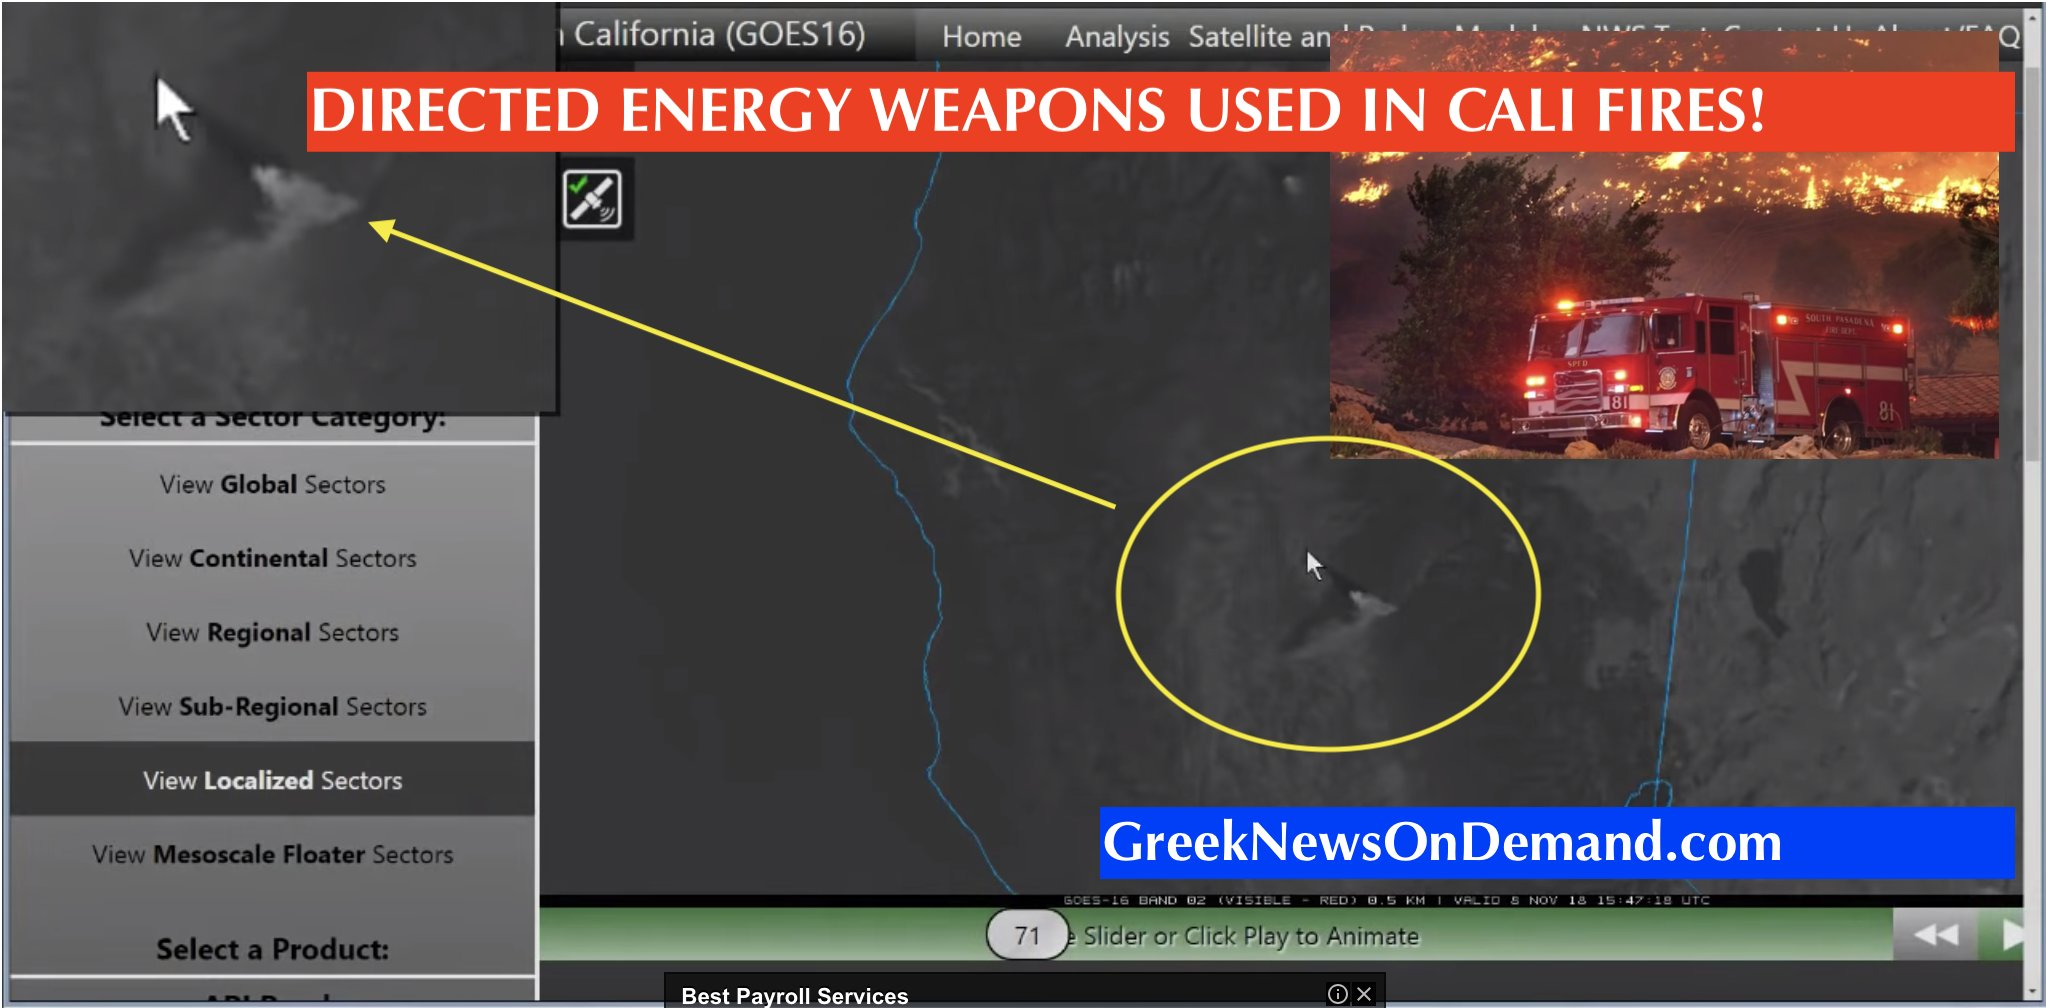 BOMBSHELL: DIRECTED ENERGY WEAPONS USED IN CALIFORNIA FIRES